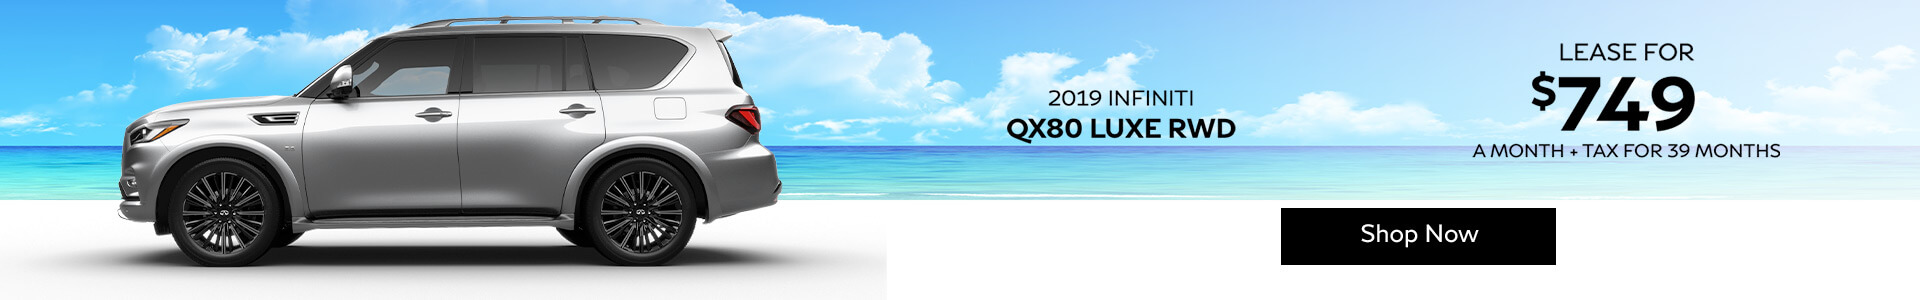 QX80 LUXE - Lease for $749